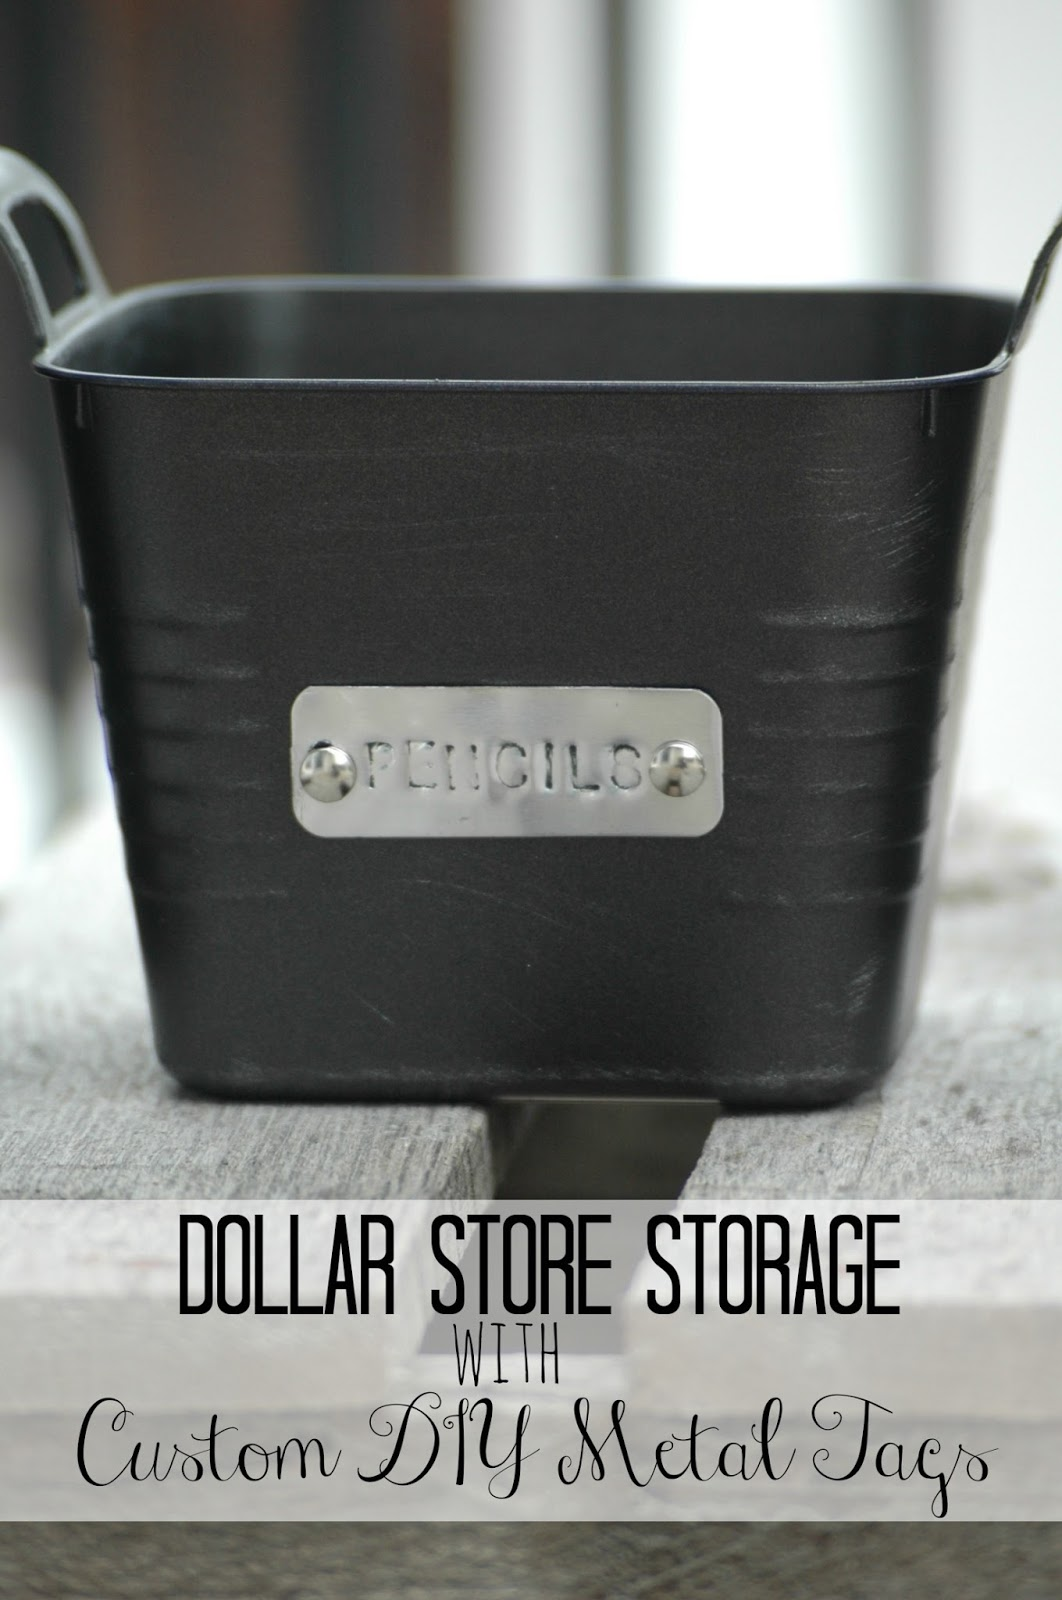 Turn basic Dollar Store bins into custom storage with spray paint and DIY metal tags.